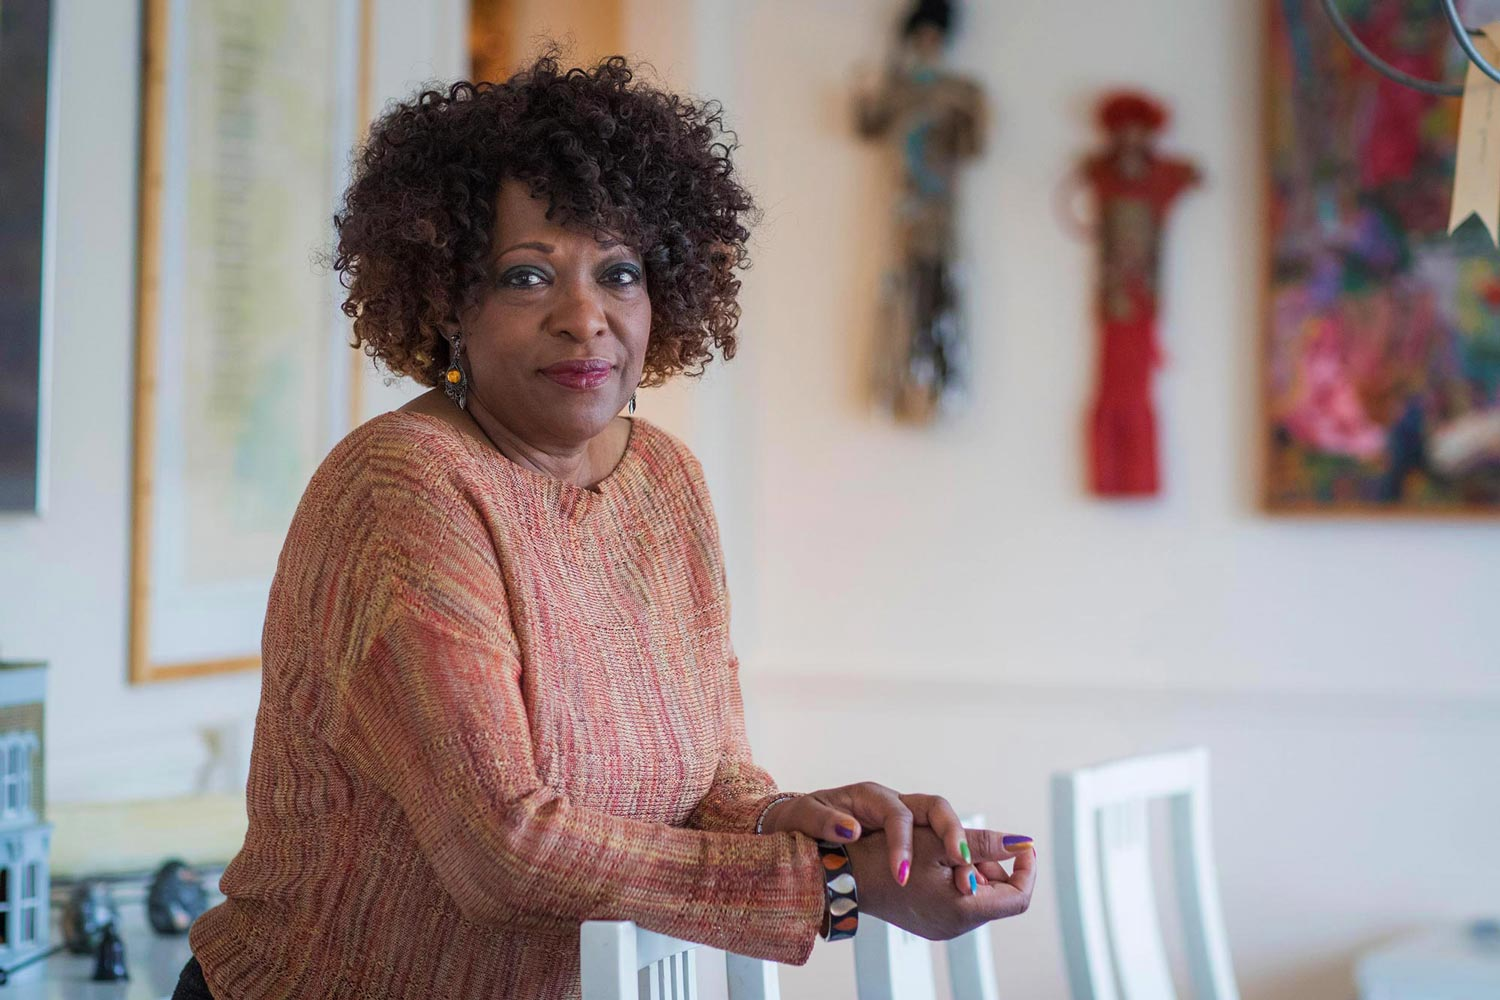 Commonwealth Professor Rita Dove, the former U.S. poet laureate, picked up three awards, including a Kenyon Review Award for Literary Achievement.